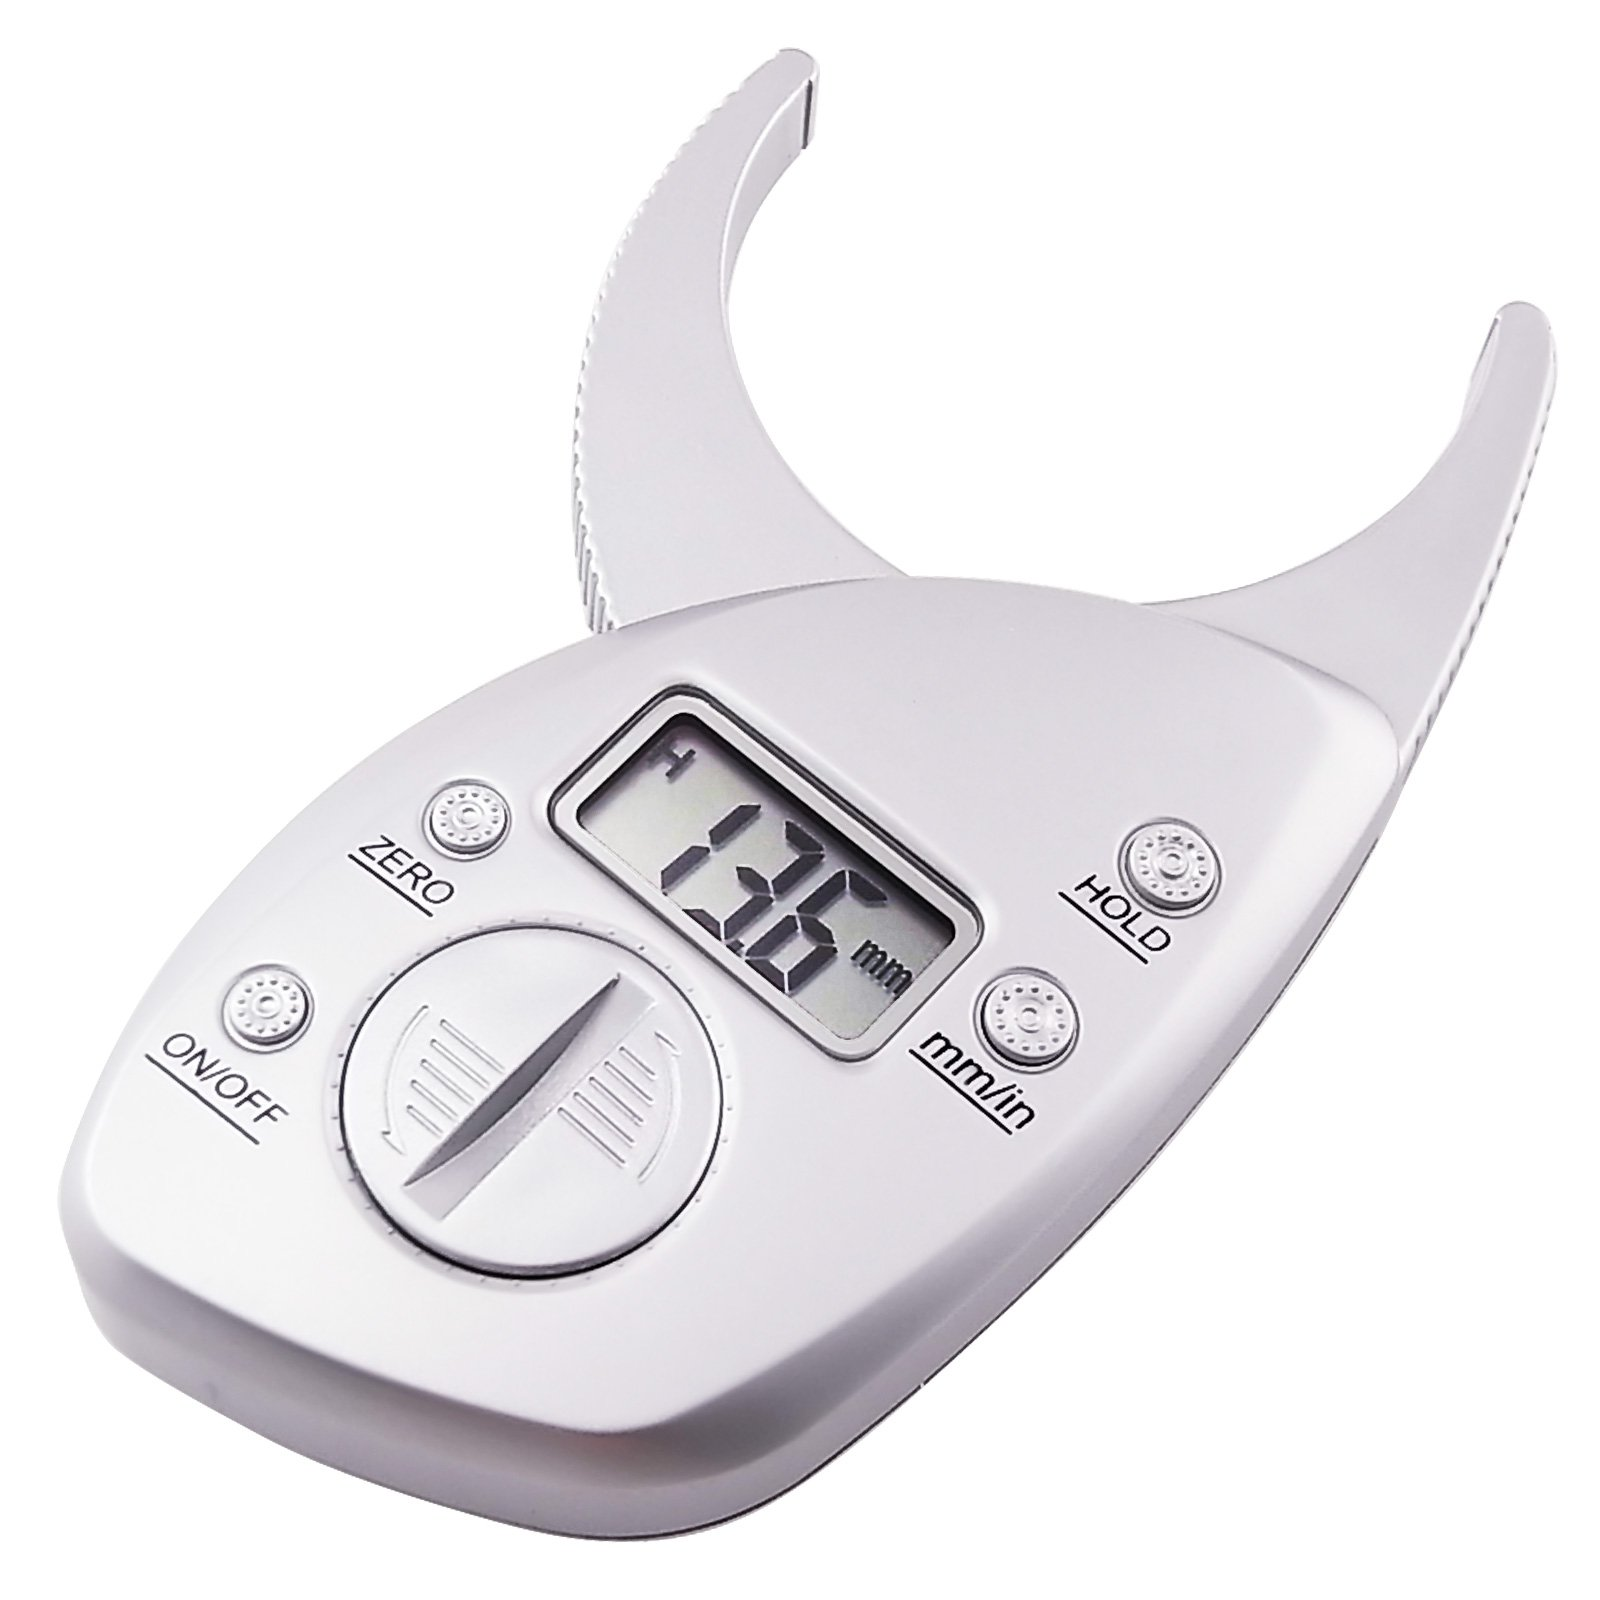 Digital Body Measuring Fat Caliper Measure mm inch Tool Body Fat Tester,Body Fat Monitors for Health Monitoring